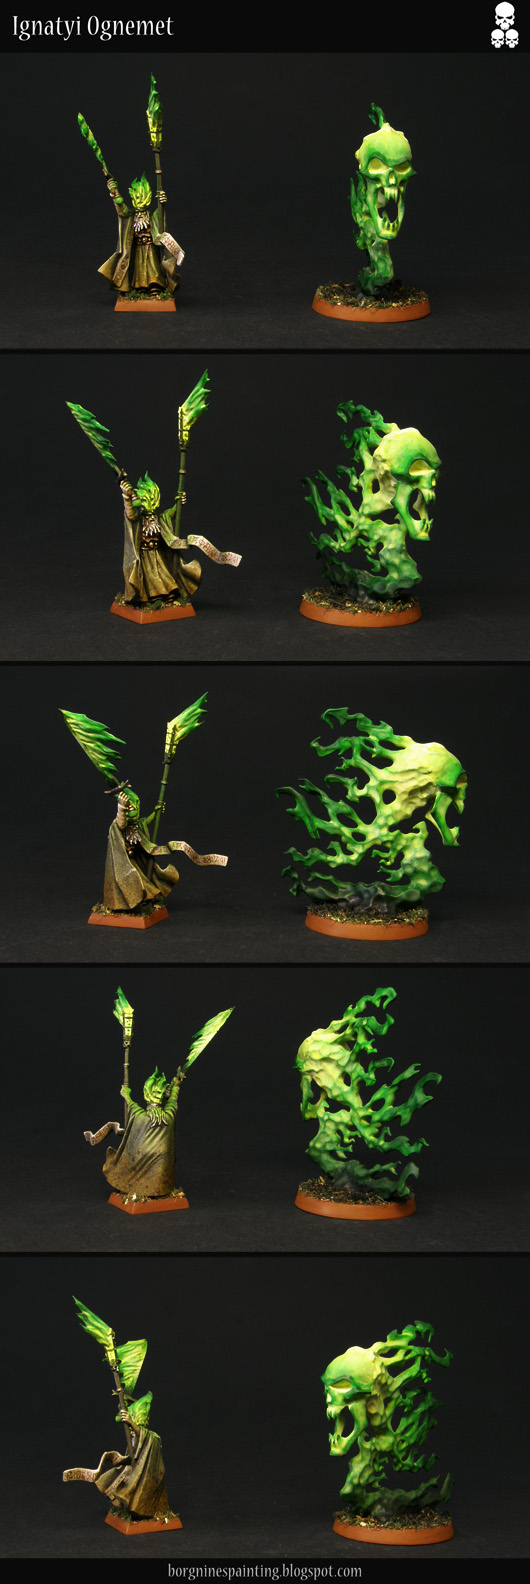 Two painted models - one, a converted fire necromancer lifting a flaming staff and a burning sword up high, with a Burning Head endless spell next to him. The flames on both are painted green with OSL effects on the wizard. The miniature is visible from several angles.